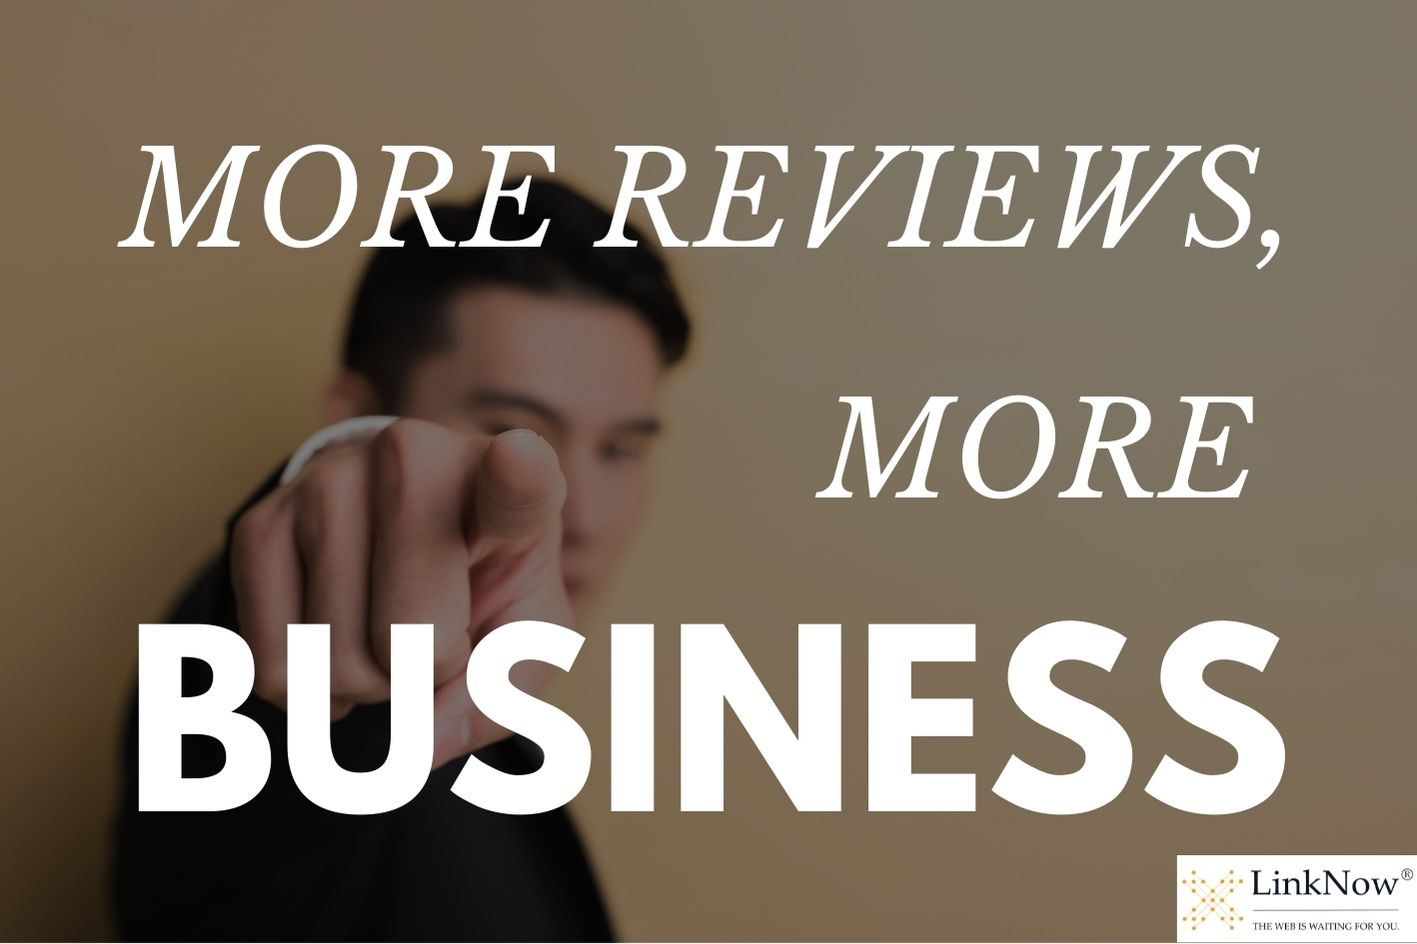 Man pointing finger in background with text in foreground: More reviews, more business.